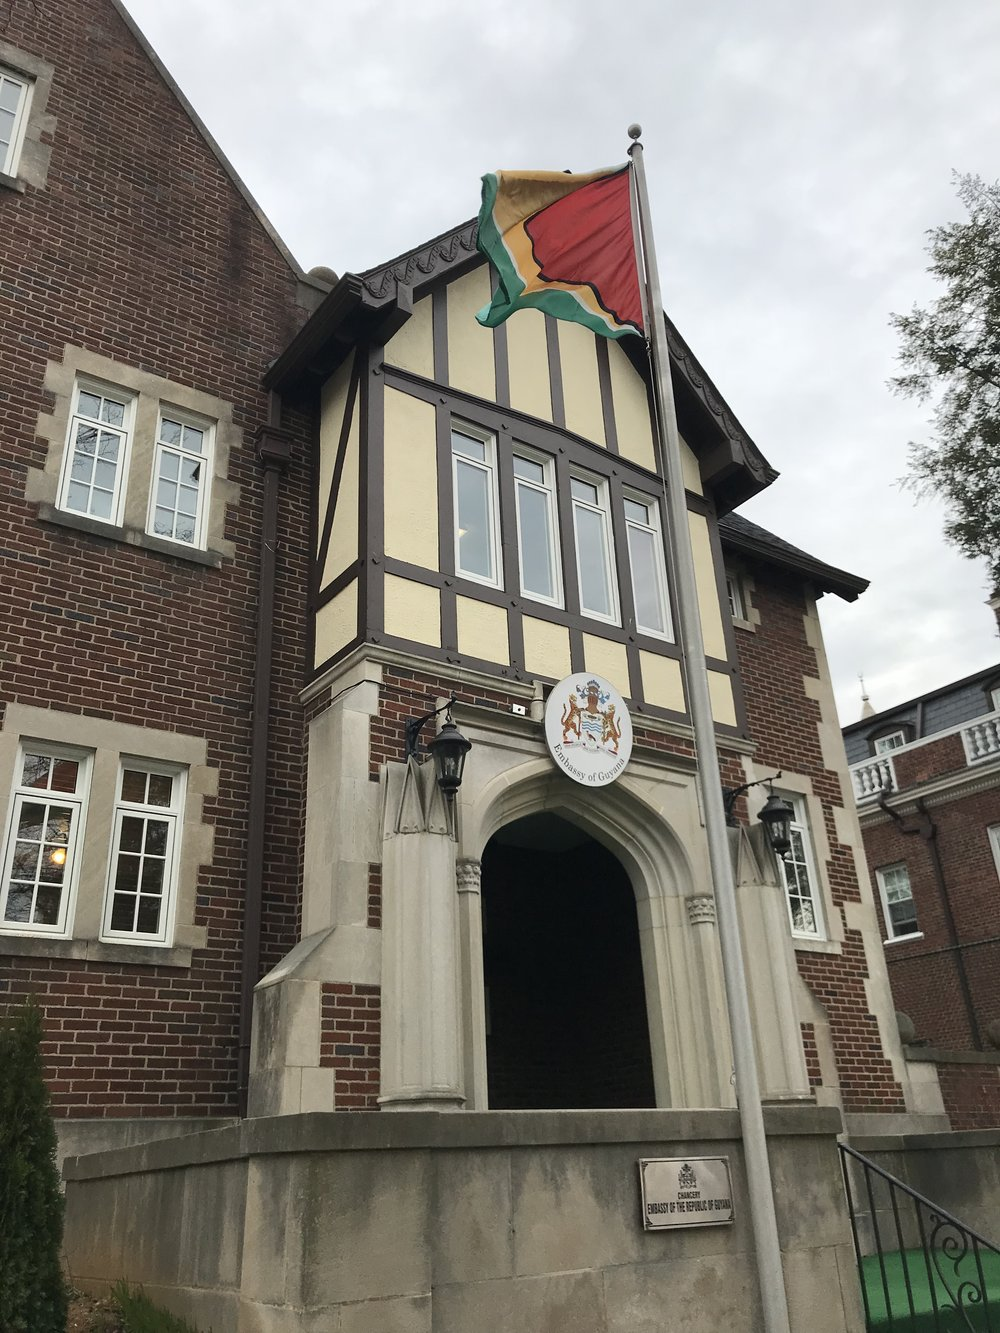 The Embassy of Guyana.